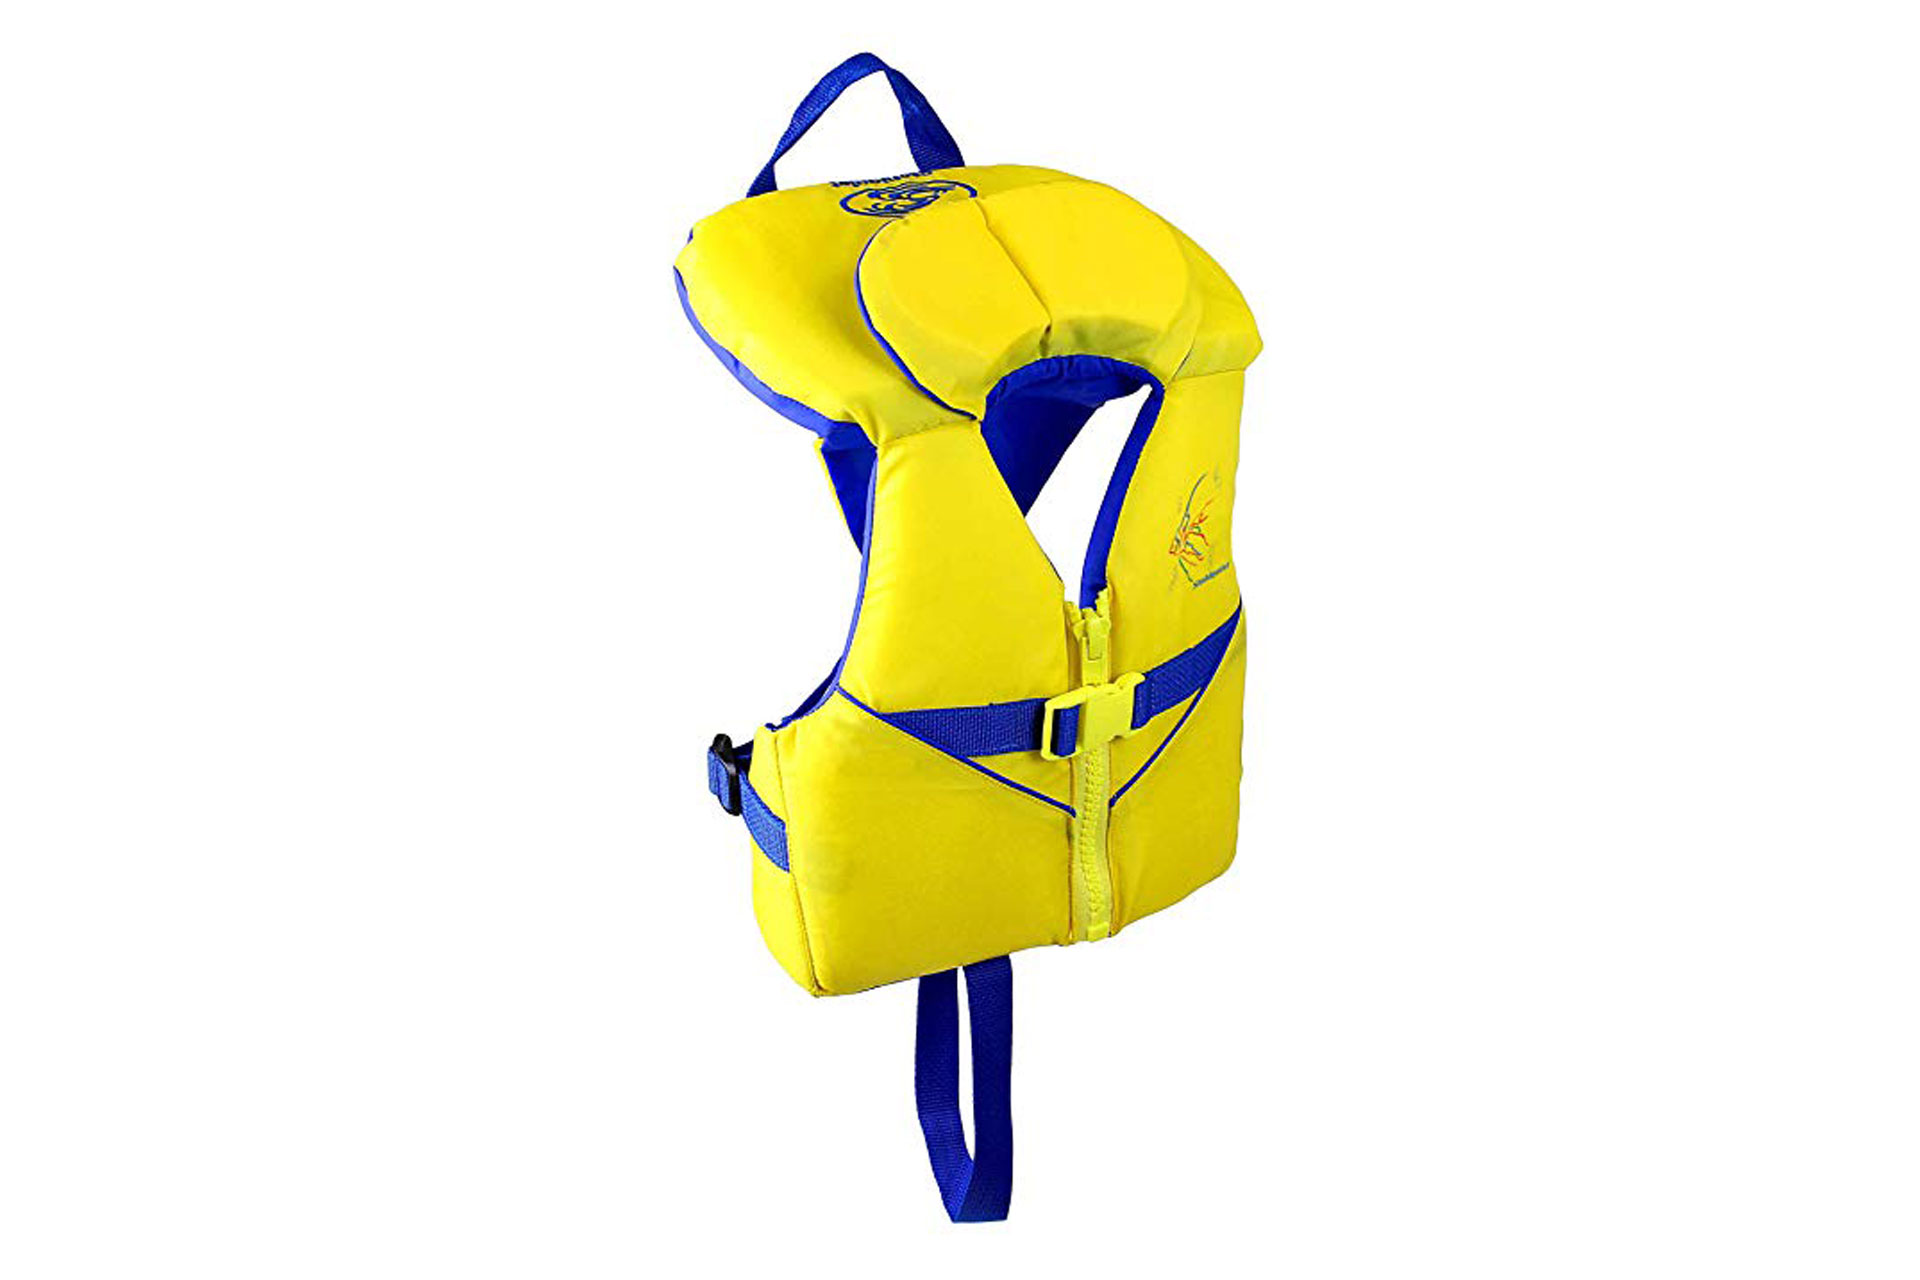 Stohlquist Life Vest; Courtesy of Amazon